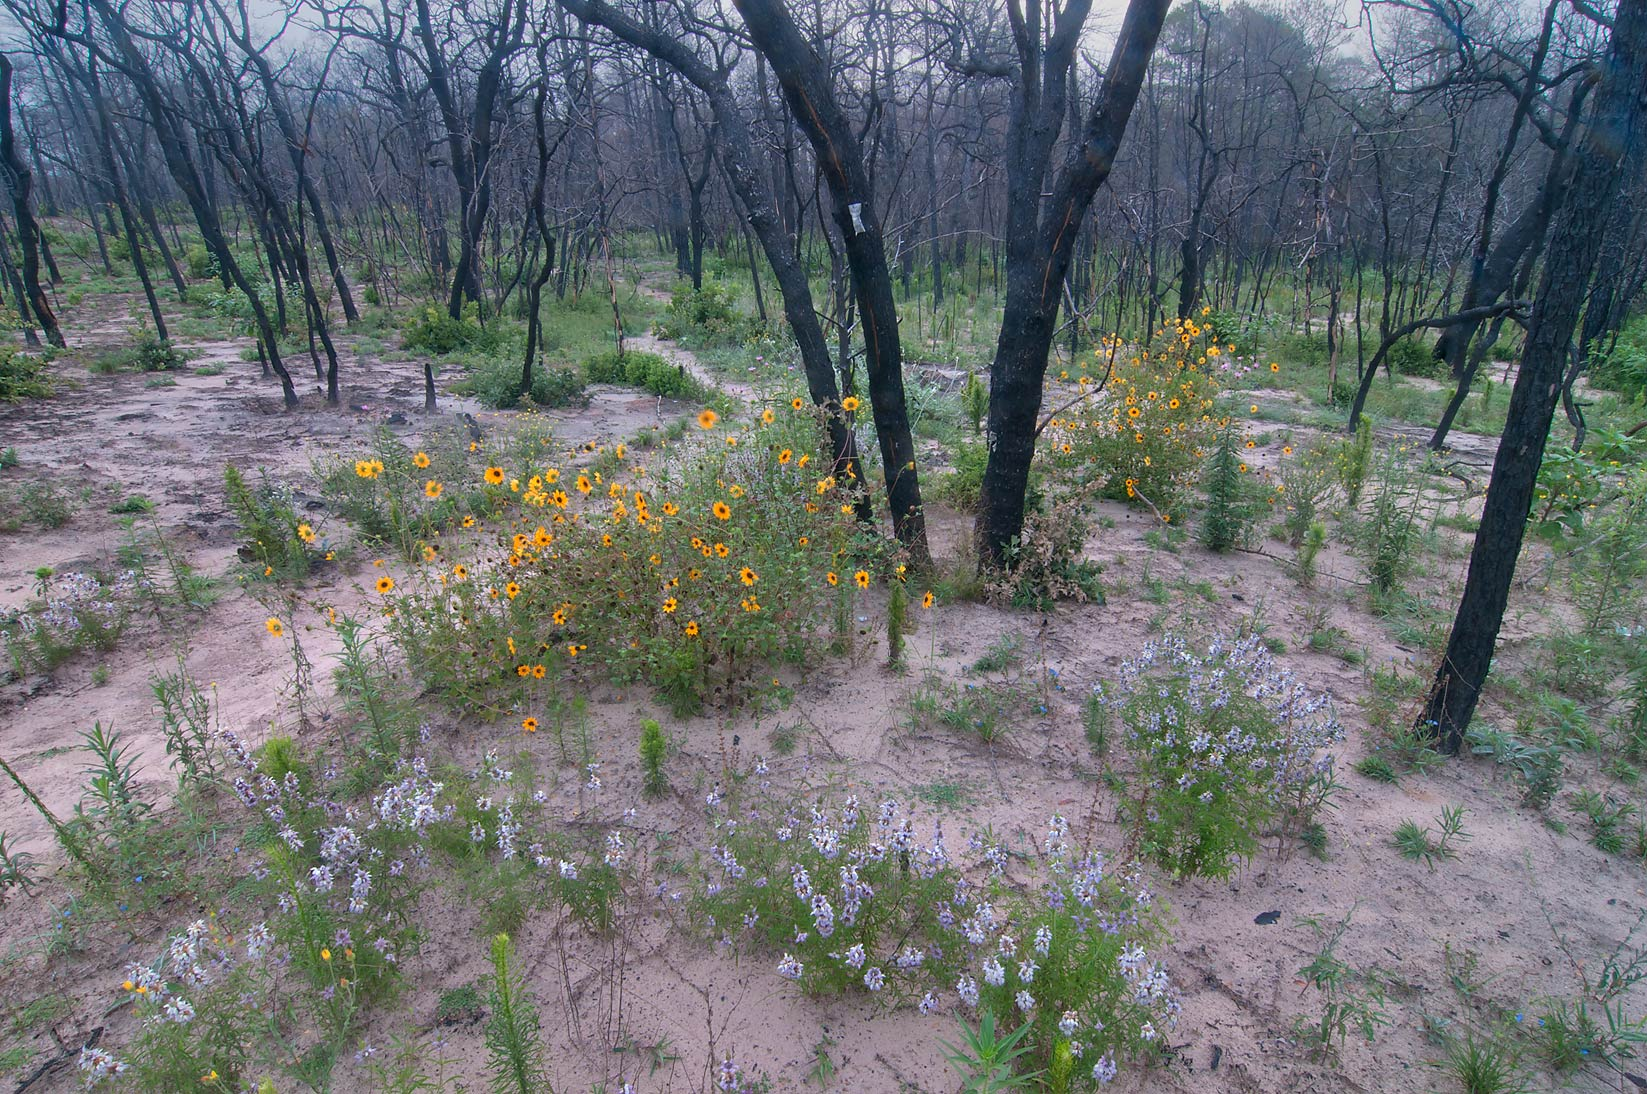 Flowers on Roosevelt's Cutoff Trail in Bastrop State Park. Bastrop, Texas